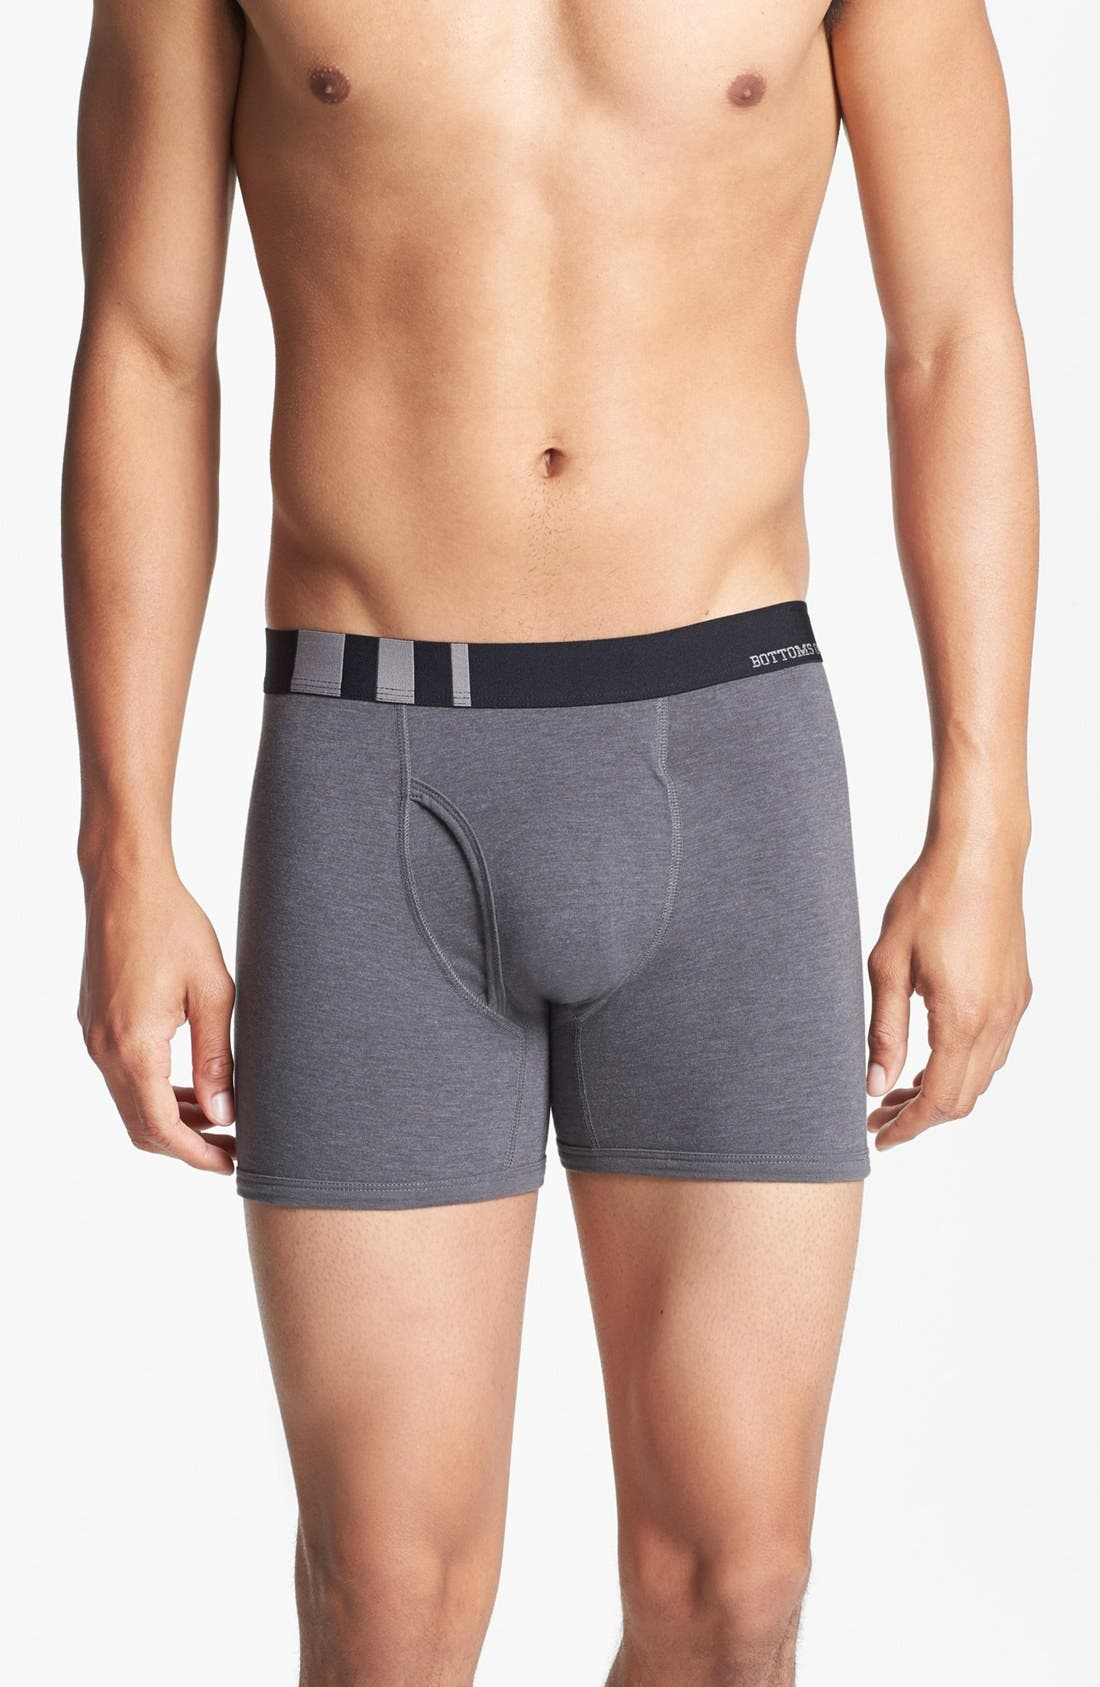 Alternate Image 2  - Basic Underwear 'Bottoms Out' Boxer Briefs (3-Pack)